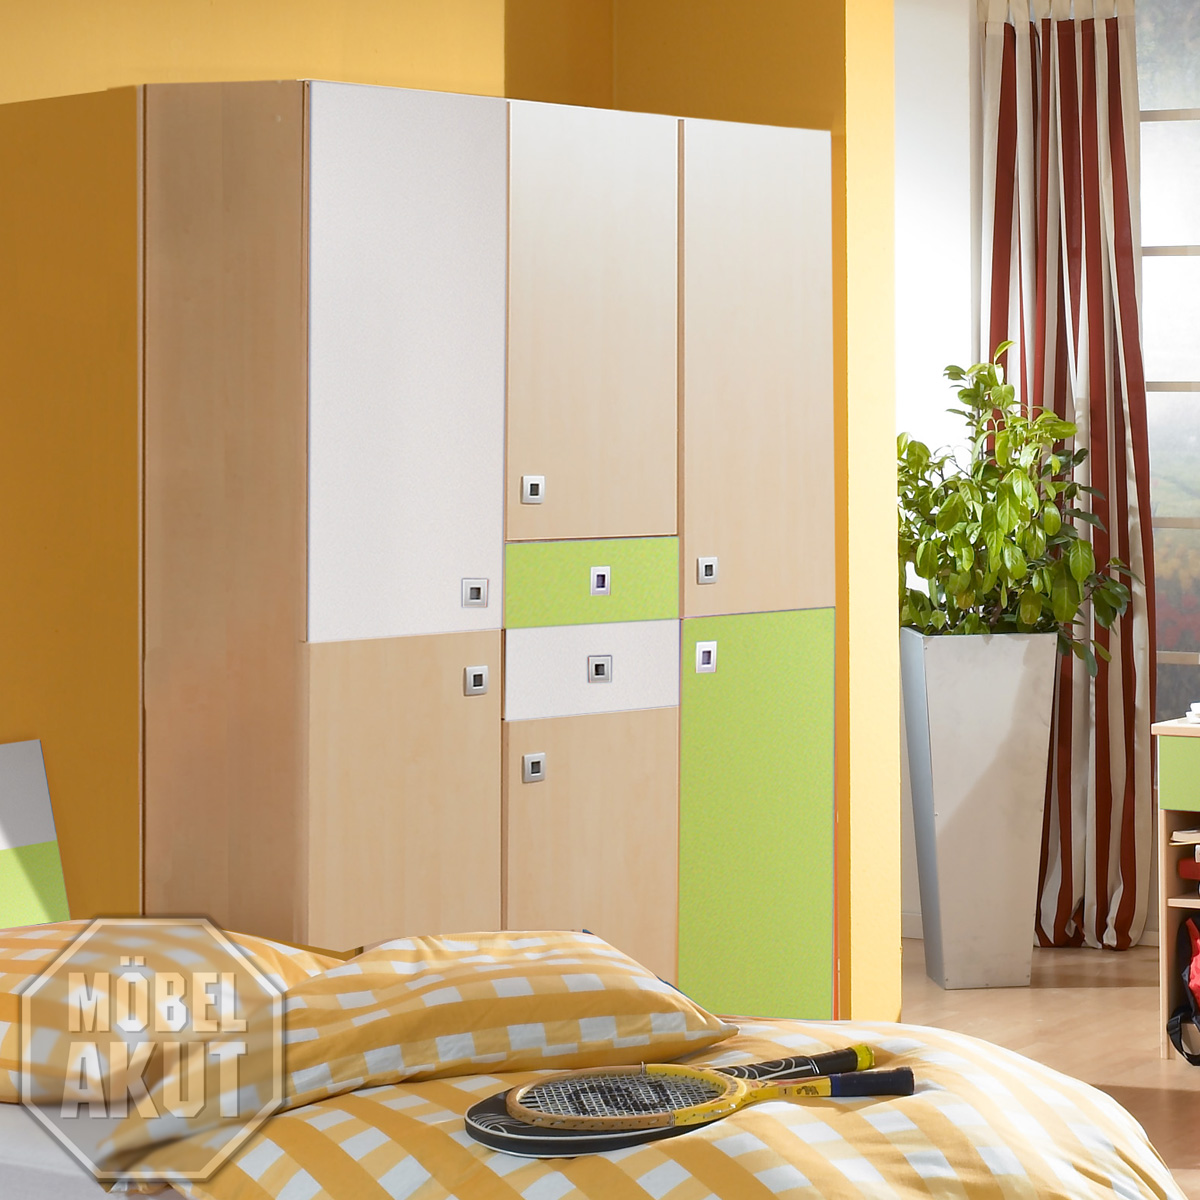 kleiderschrank sando schrank ahorn gr n wei b 135 ebay. Black Bedroom Furniture Sets. Home Design Ideas